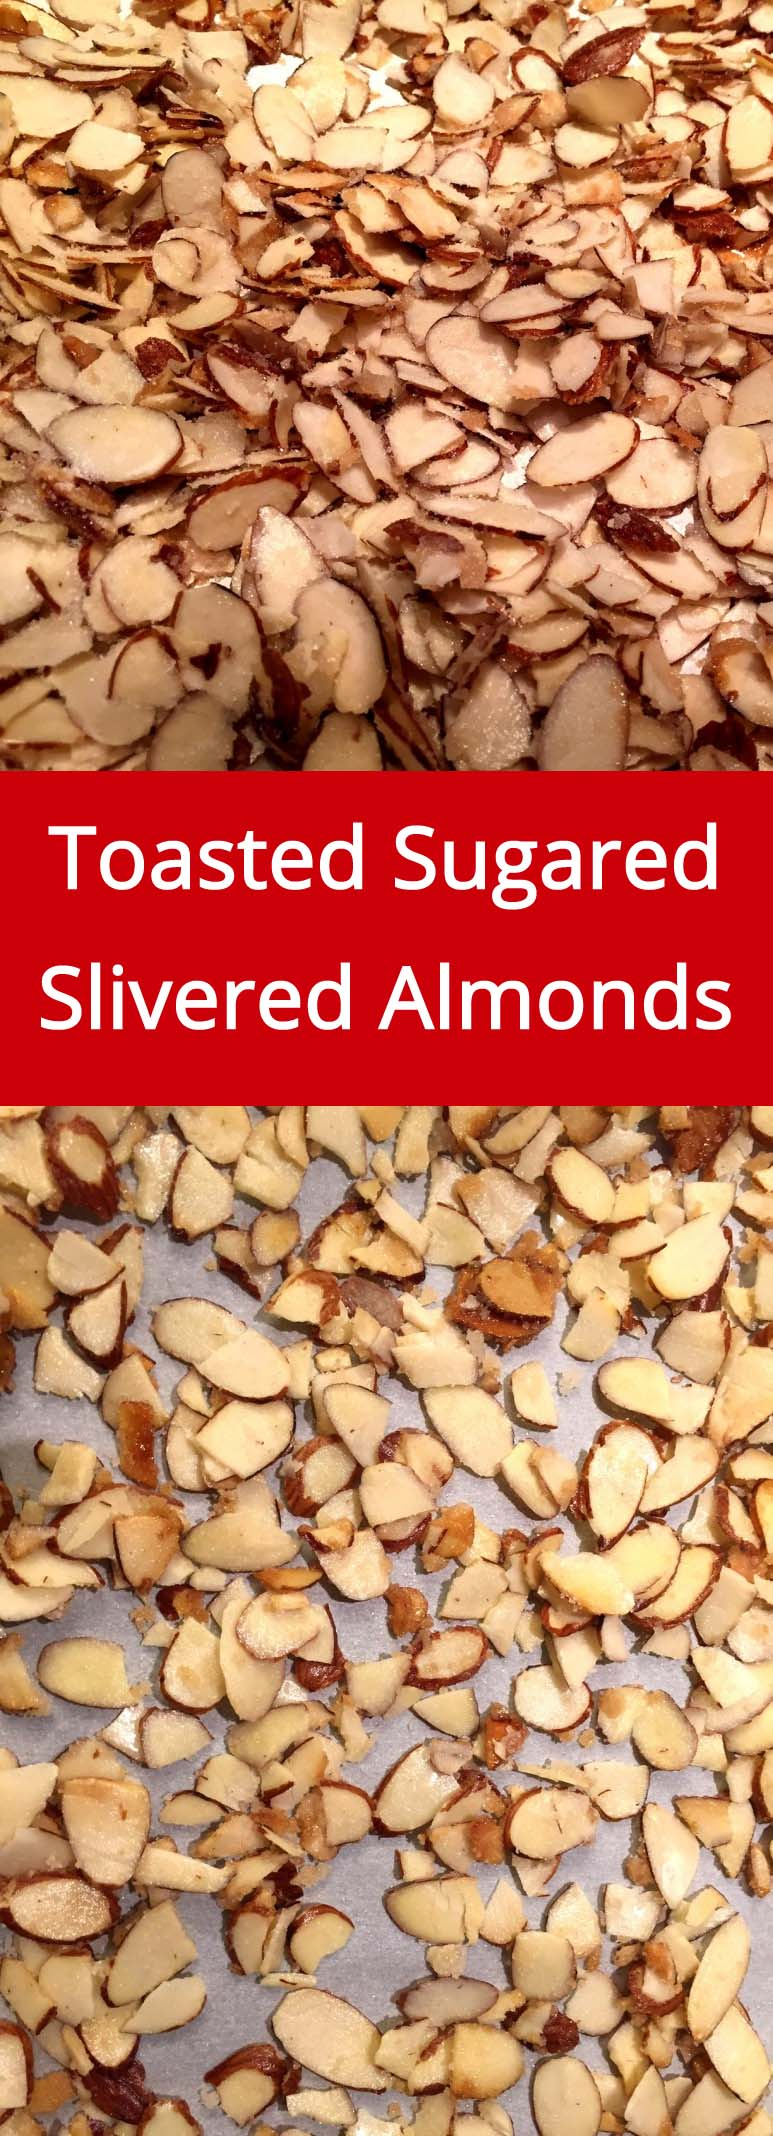 Toasted Sugared Slivered Almonds Recipe - they are so crunchy and addictive!  Perfect as a salad topping! | MelanieCooks.com